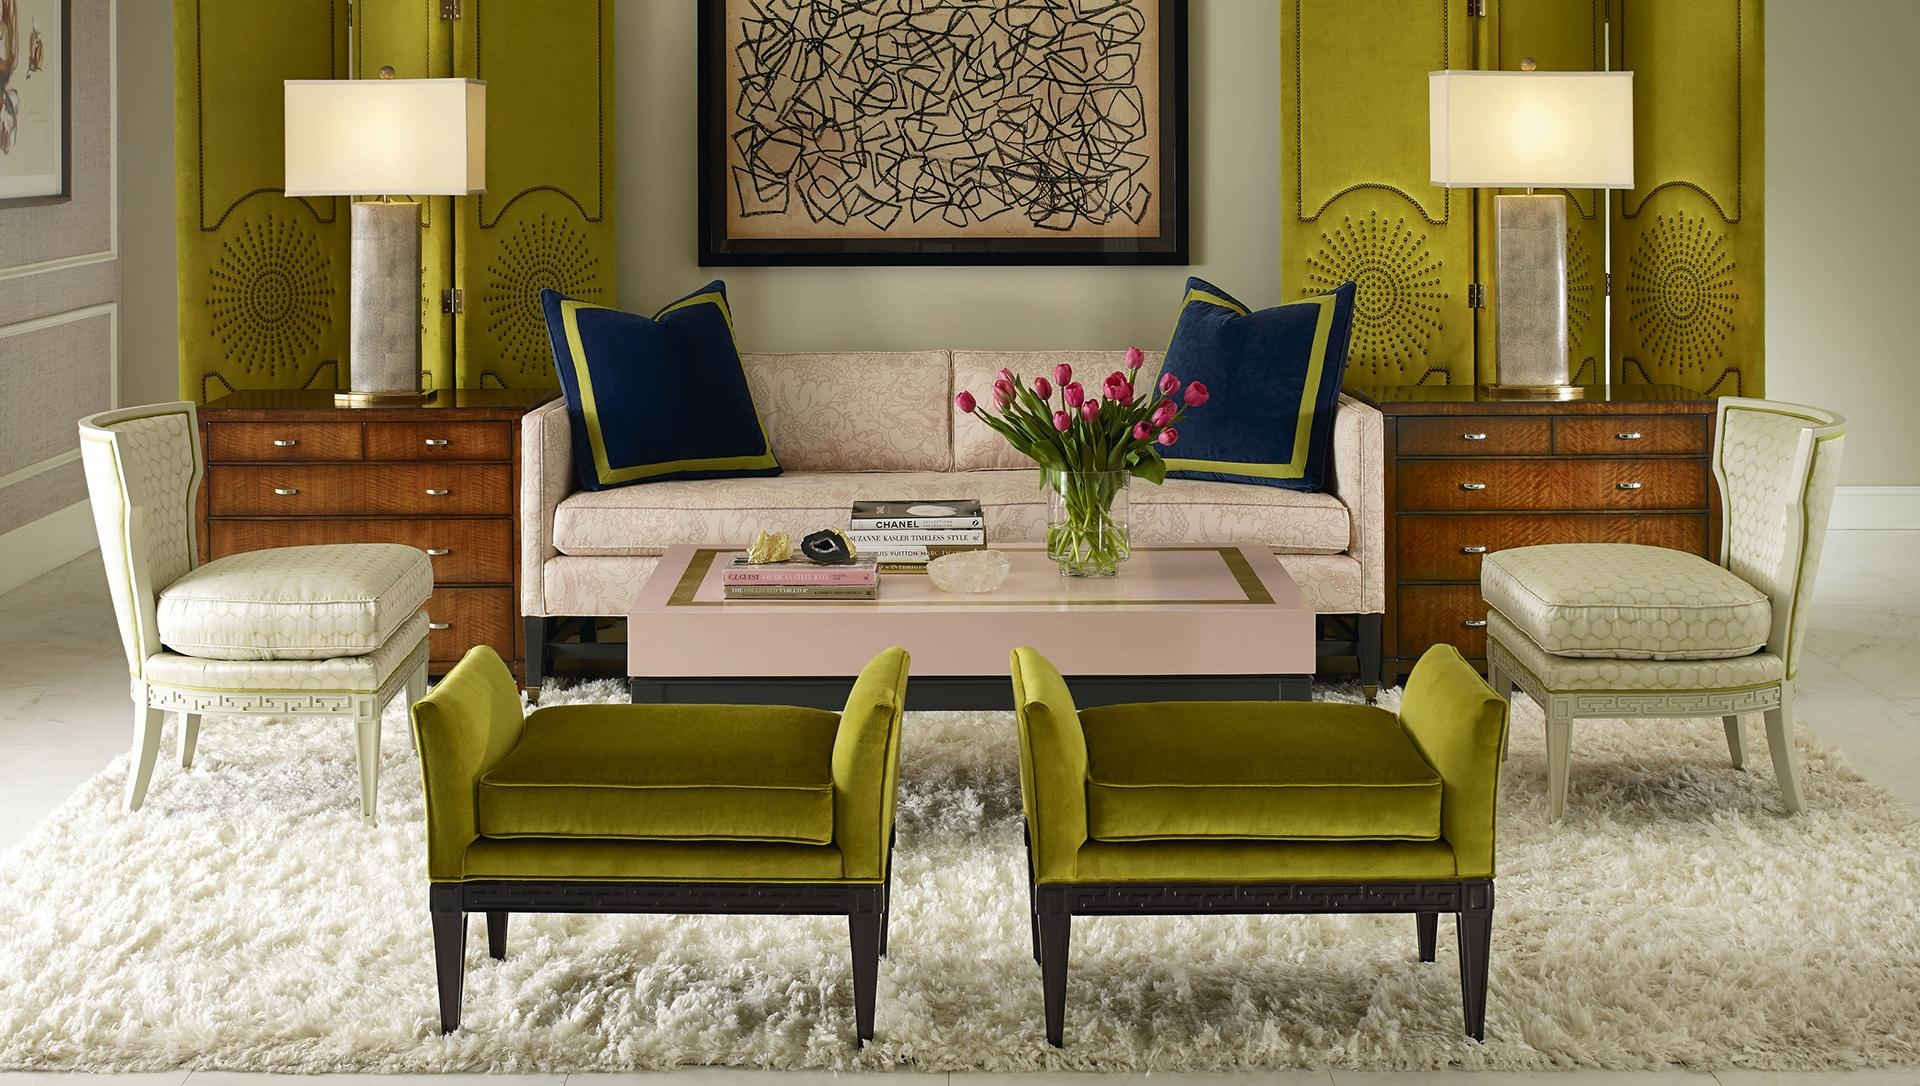 Cr Laine Home Page For Sofa Chair And Ottoman (View 6 of 20)